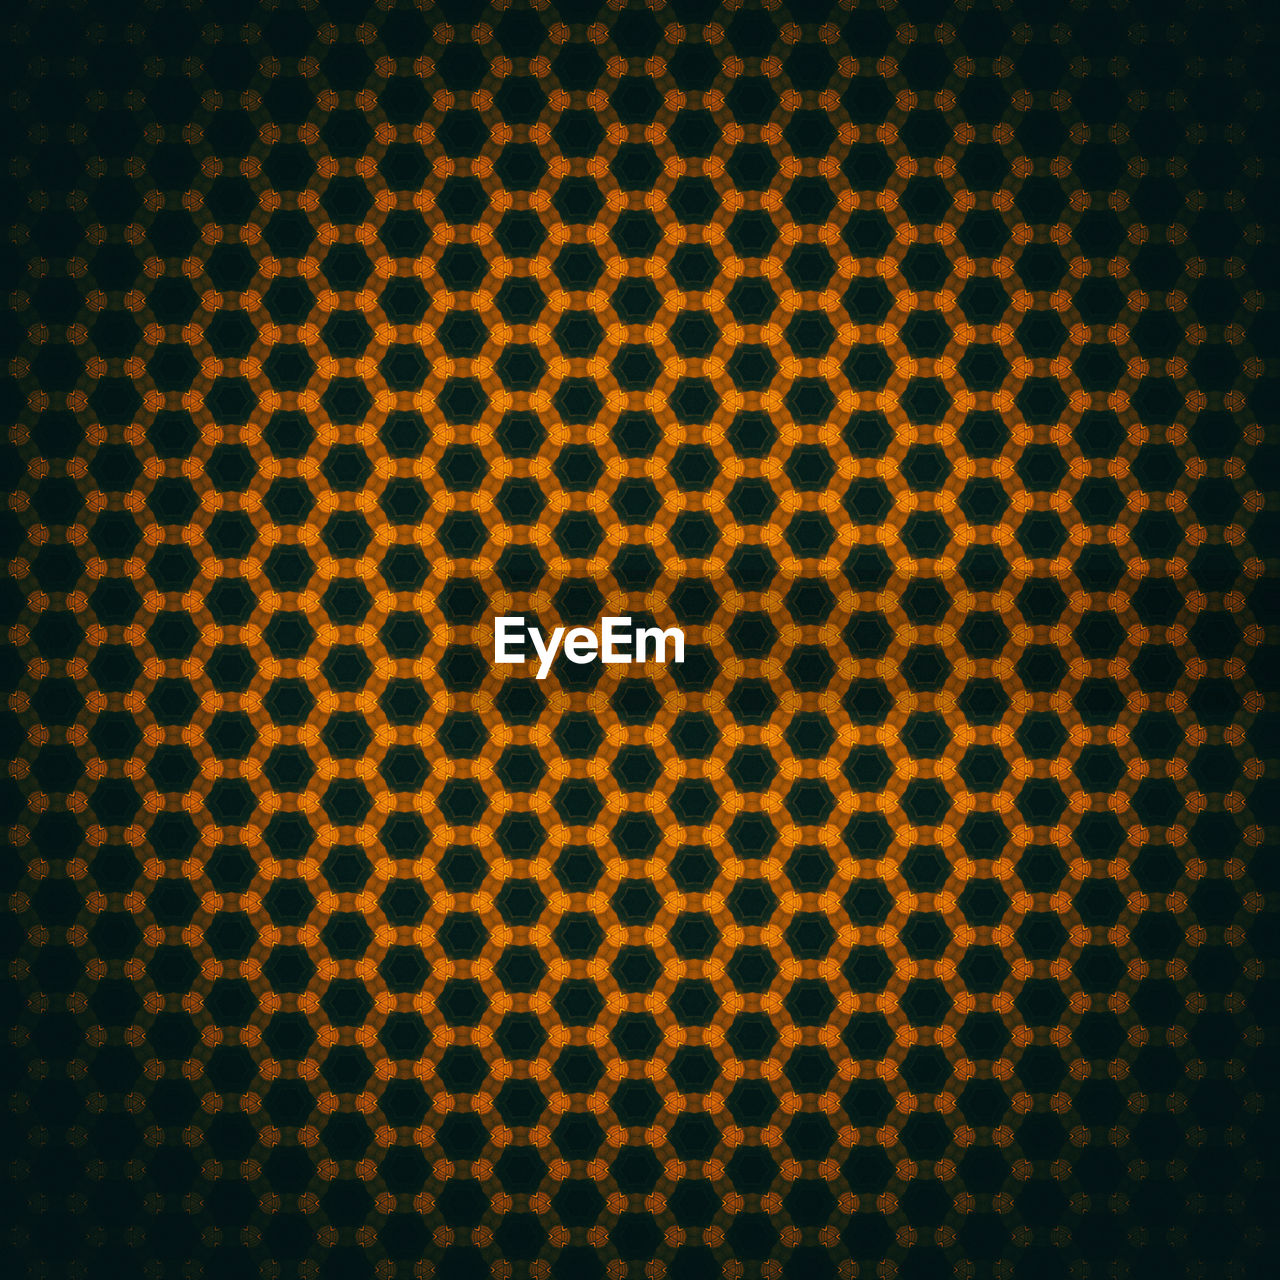 backgrounds, pattern, full frame, metal, textured, geometric shape, close-up, shape, no people, design, repetition, circle, abstract, hole, indoors, black color, sheet metal, alloy, iron - metal, grid, steel, textured effect